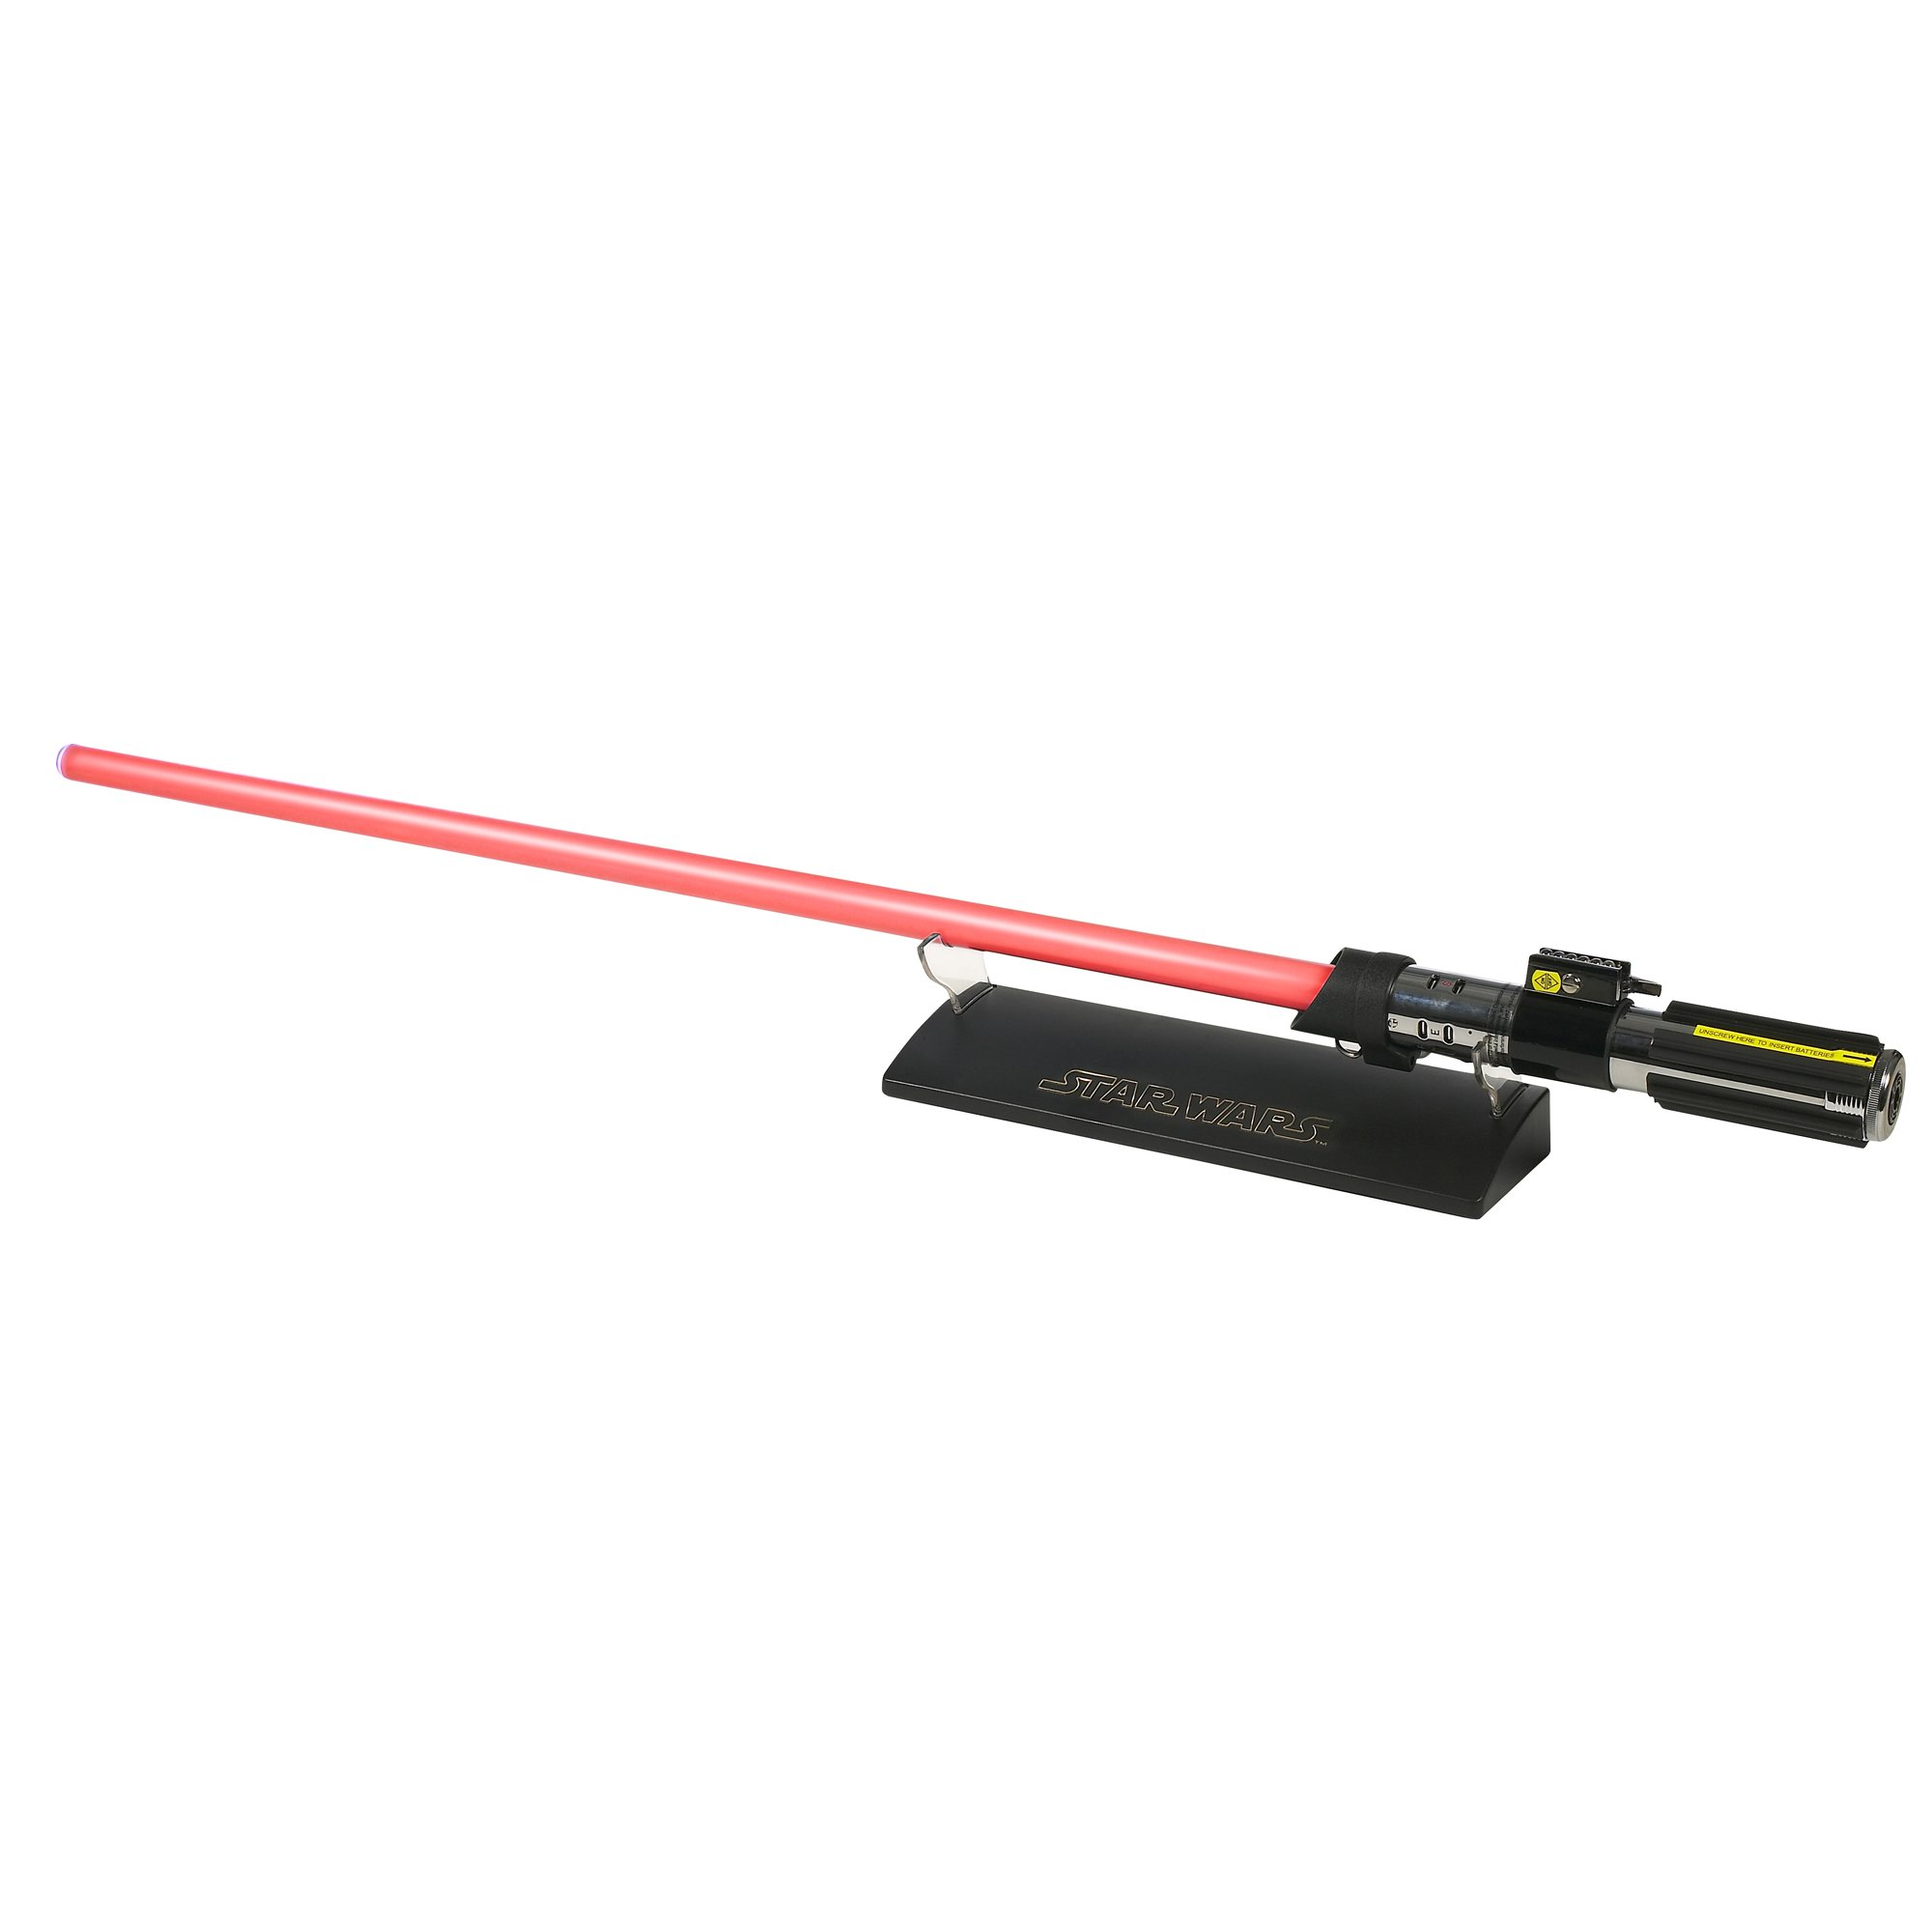 Star Wars Signature Series Force FX Lightsaber - Darth Vader by Hasbro (Image #1)